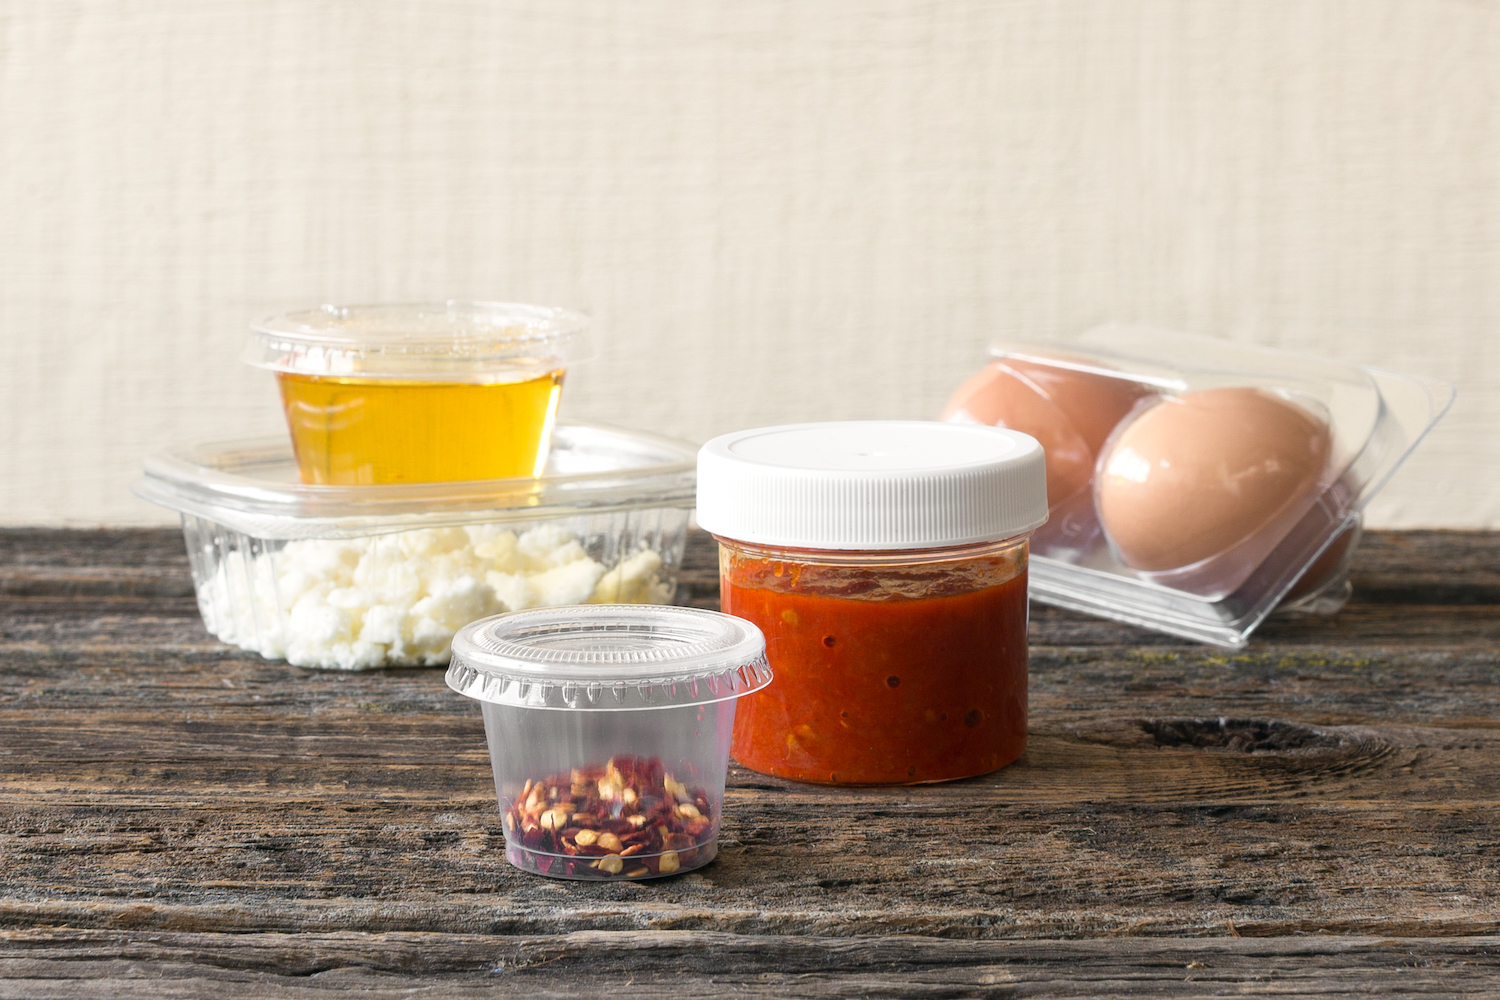 Sun Basket reusable and recyclable containers and jars - a photo